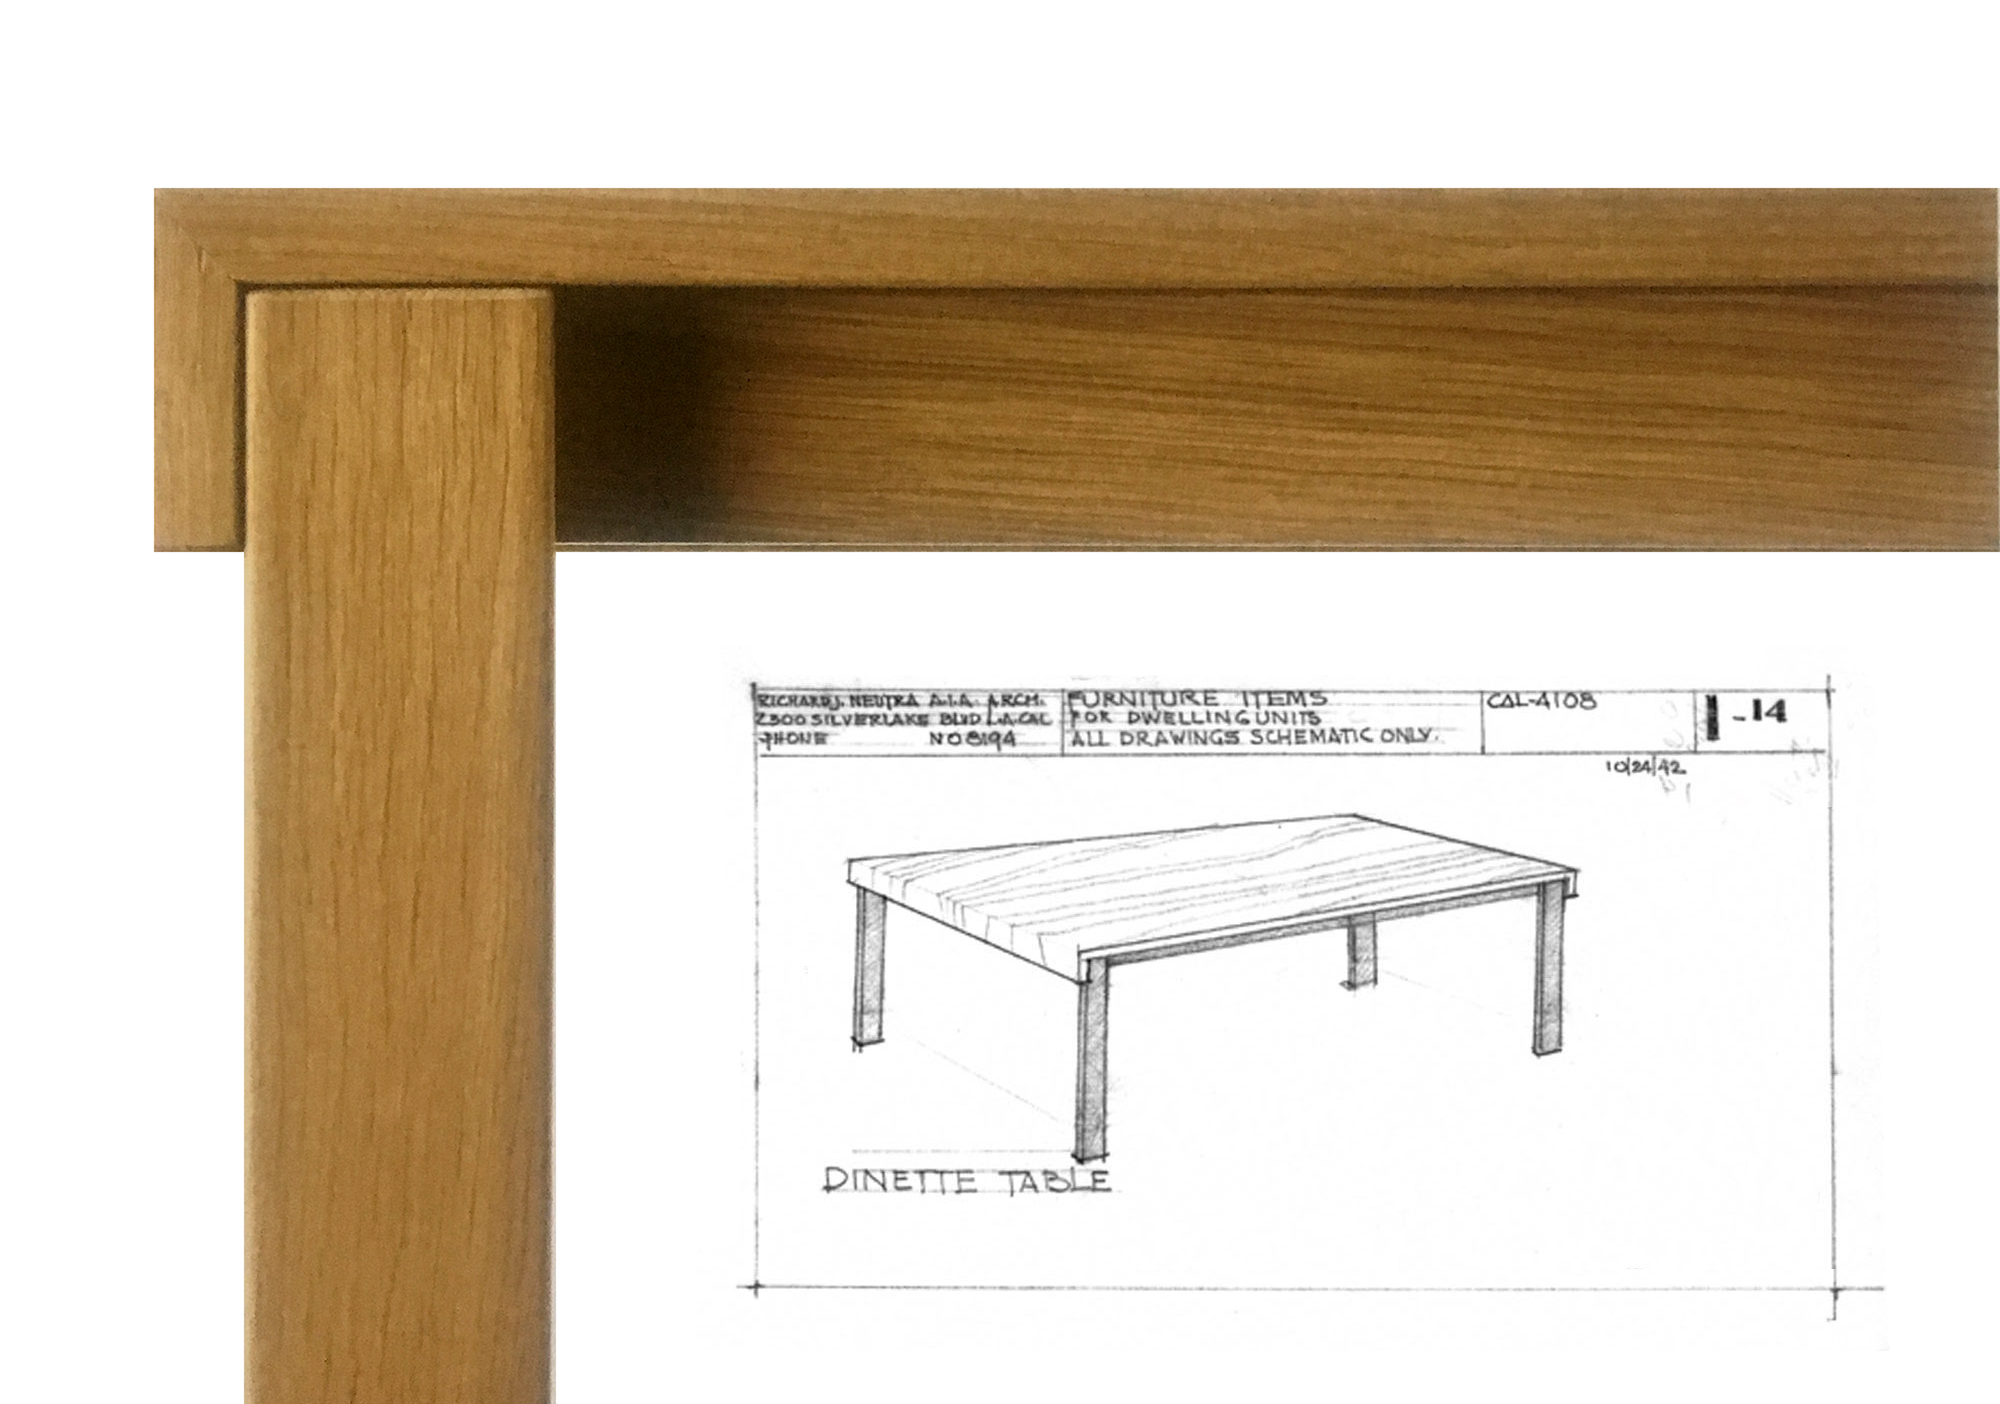 Neutra table-sketch.jpg